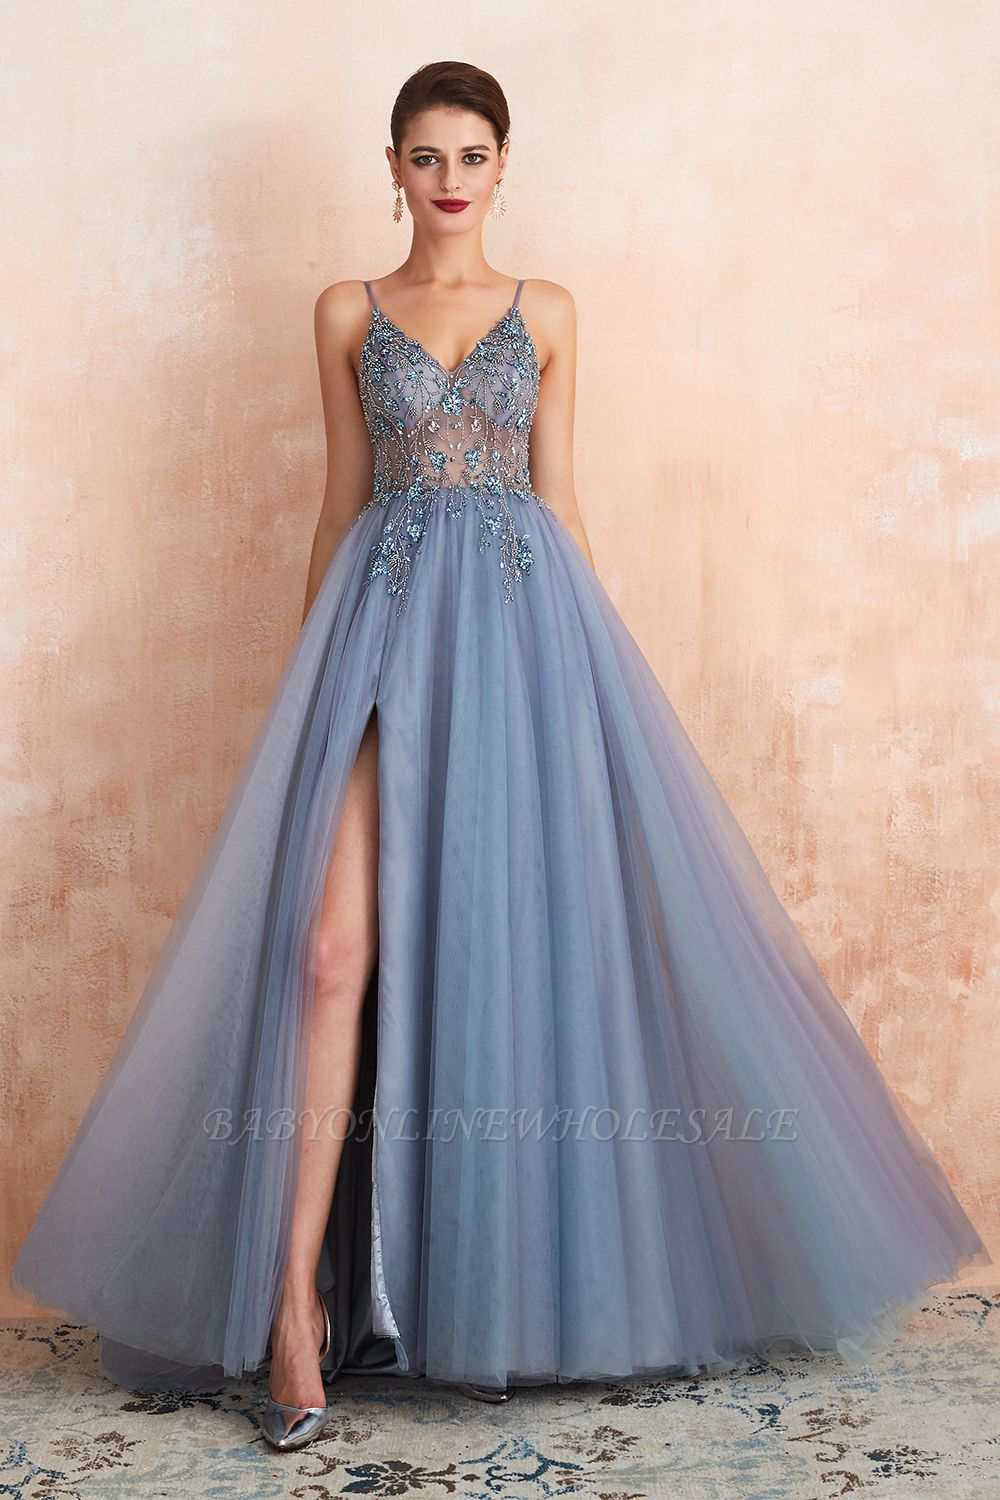 Charlotte | New Arrival Dusty Blue, Pink Spaghetti Strap Prom Dress with Sexy High Split, Cheap Evening Gowns Online